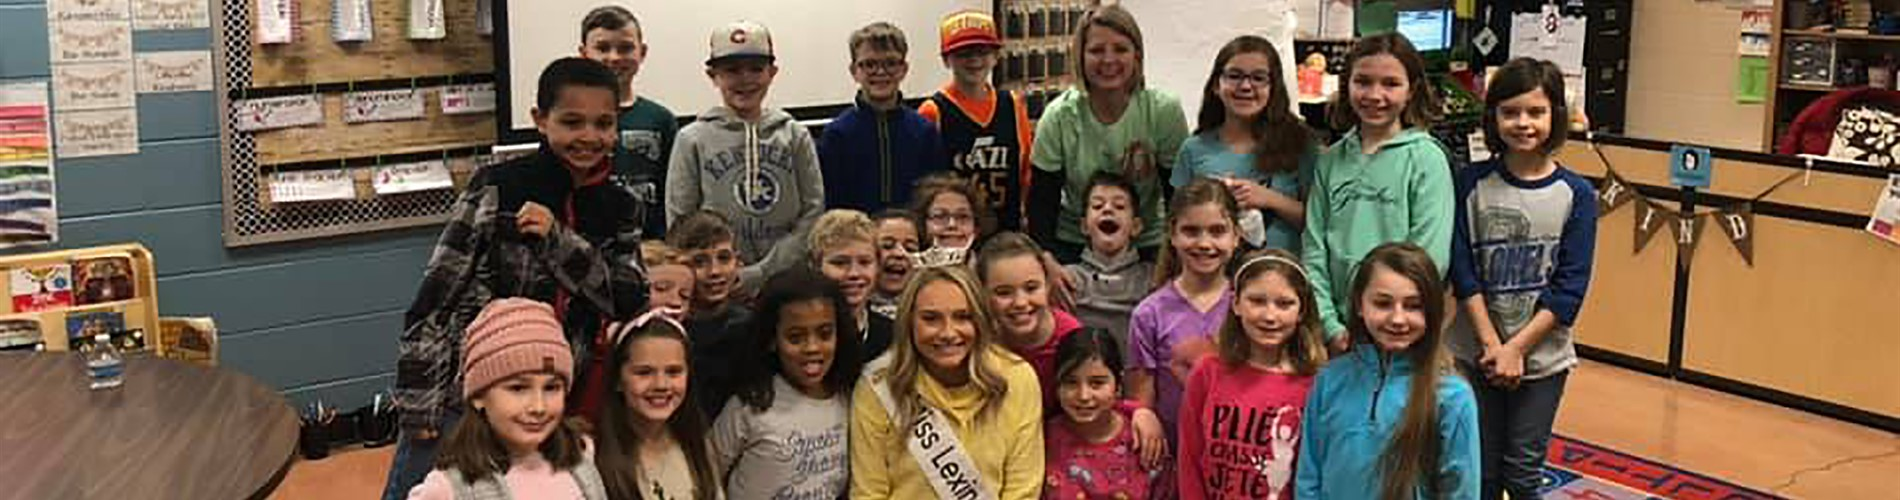 Miss Lexington visits Centerfield Elementary